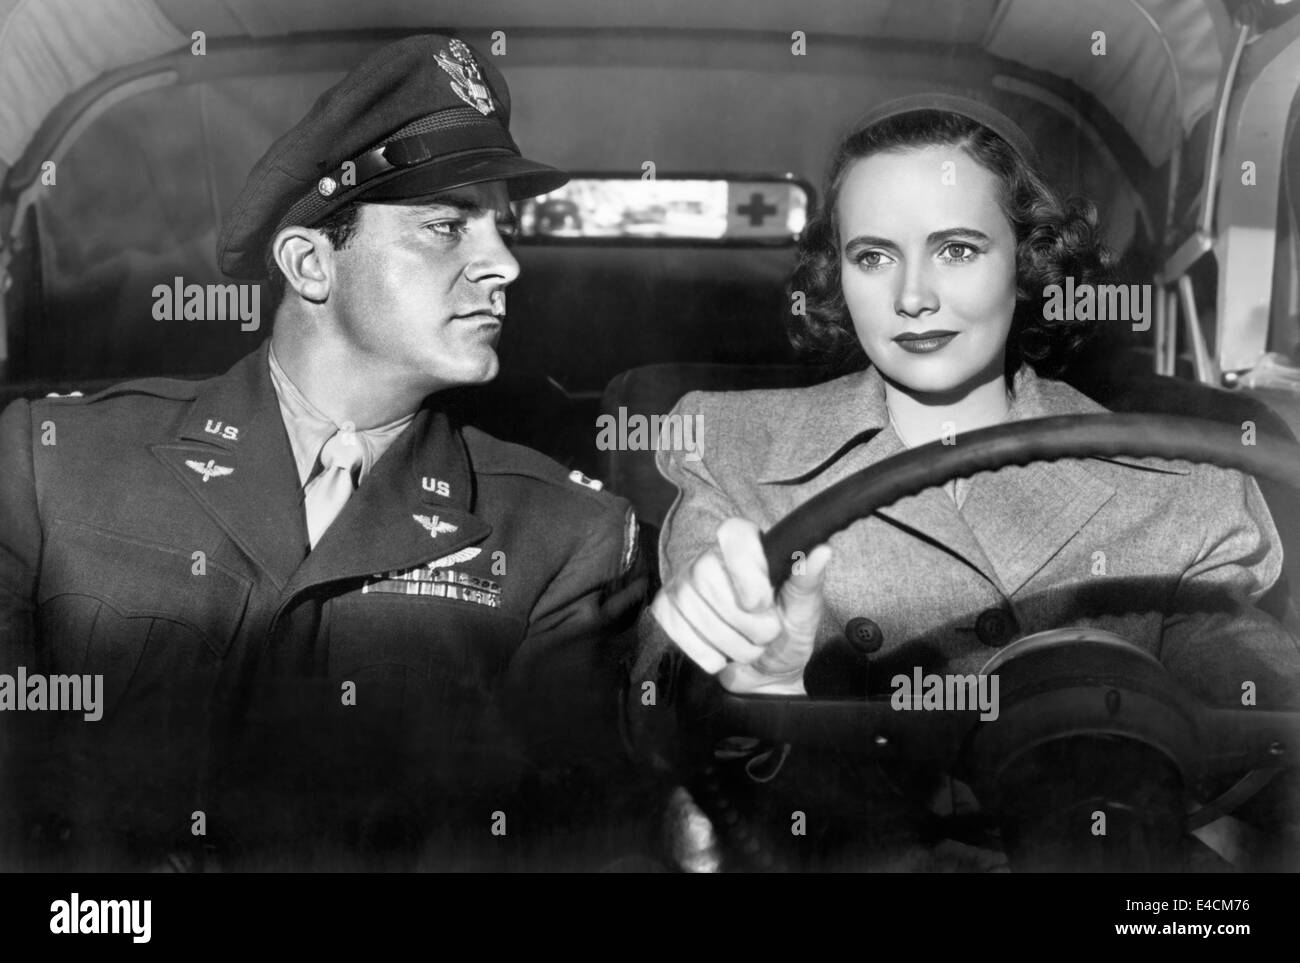 THE BEST YEARS OF OUR LIVES 1946 Samuel Goldwyn film with Dana Andrews and Teresa Wright - Stock Image